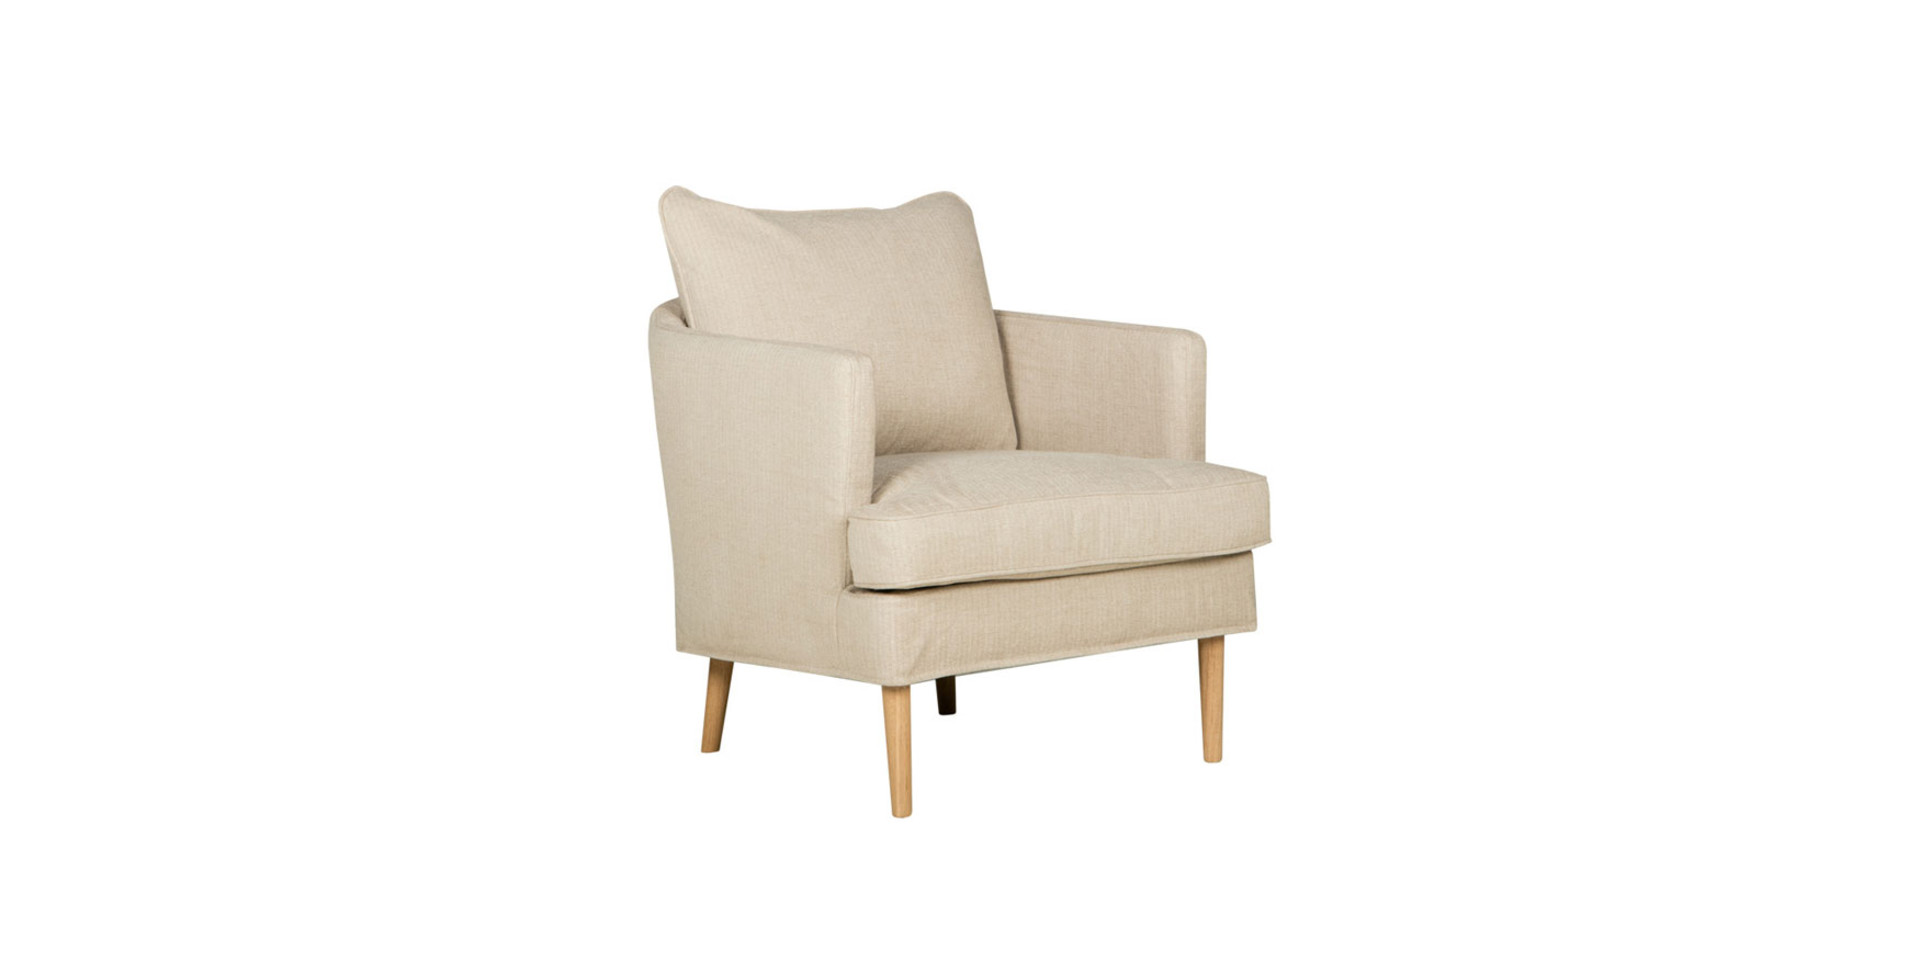 sits-julia-fauteuil-armchair_flossy4_beige_2